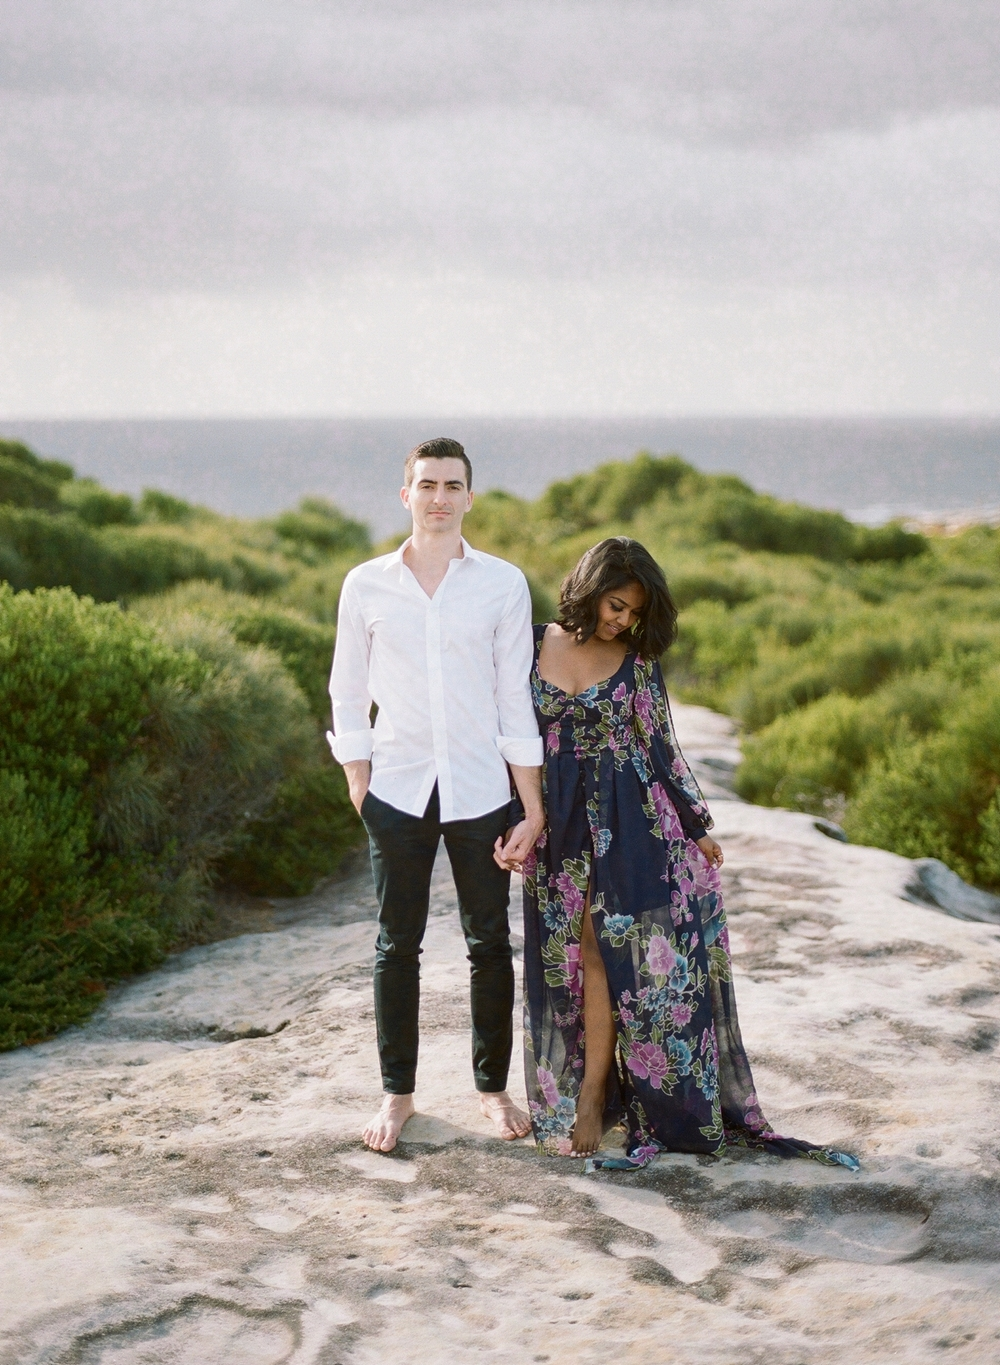 Coastal Sydney couples session by Mr Edwards Photography_0737_1156.jpg